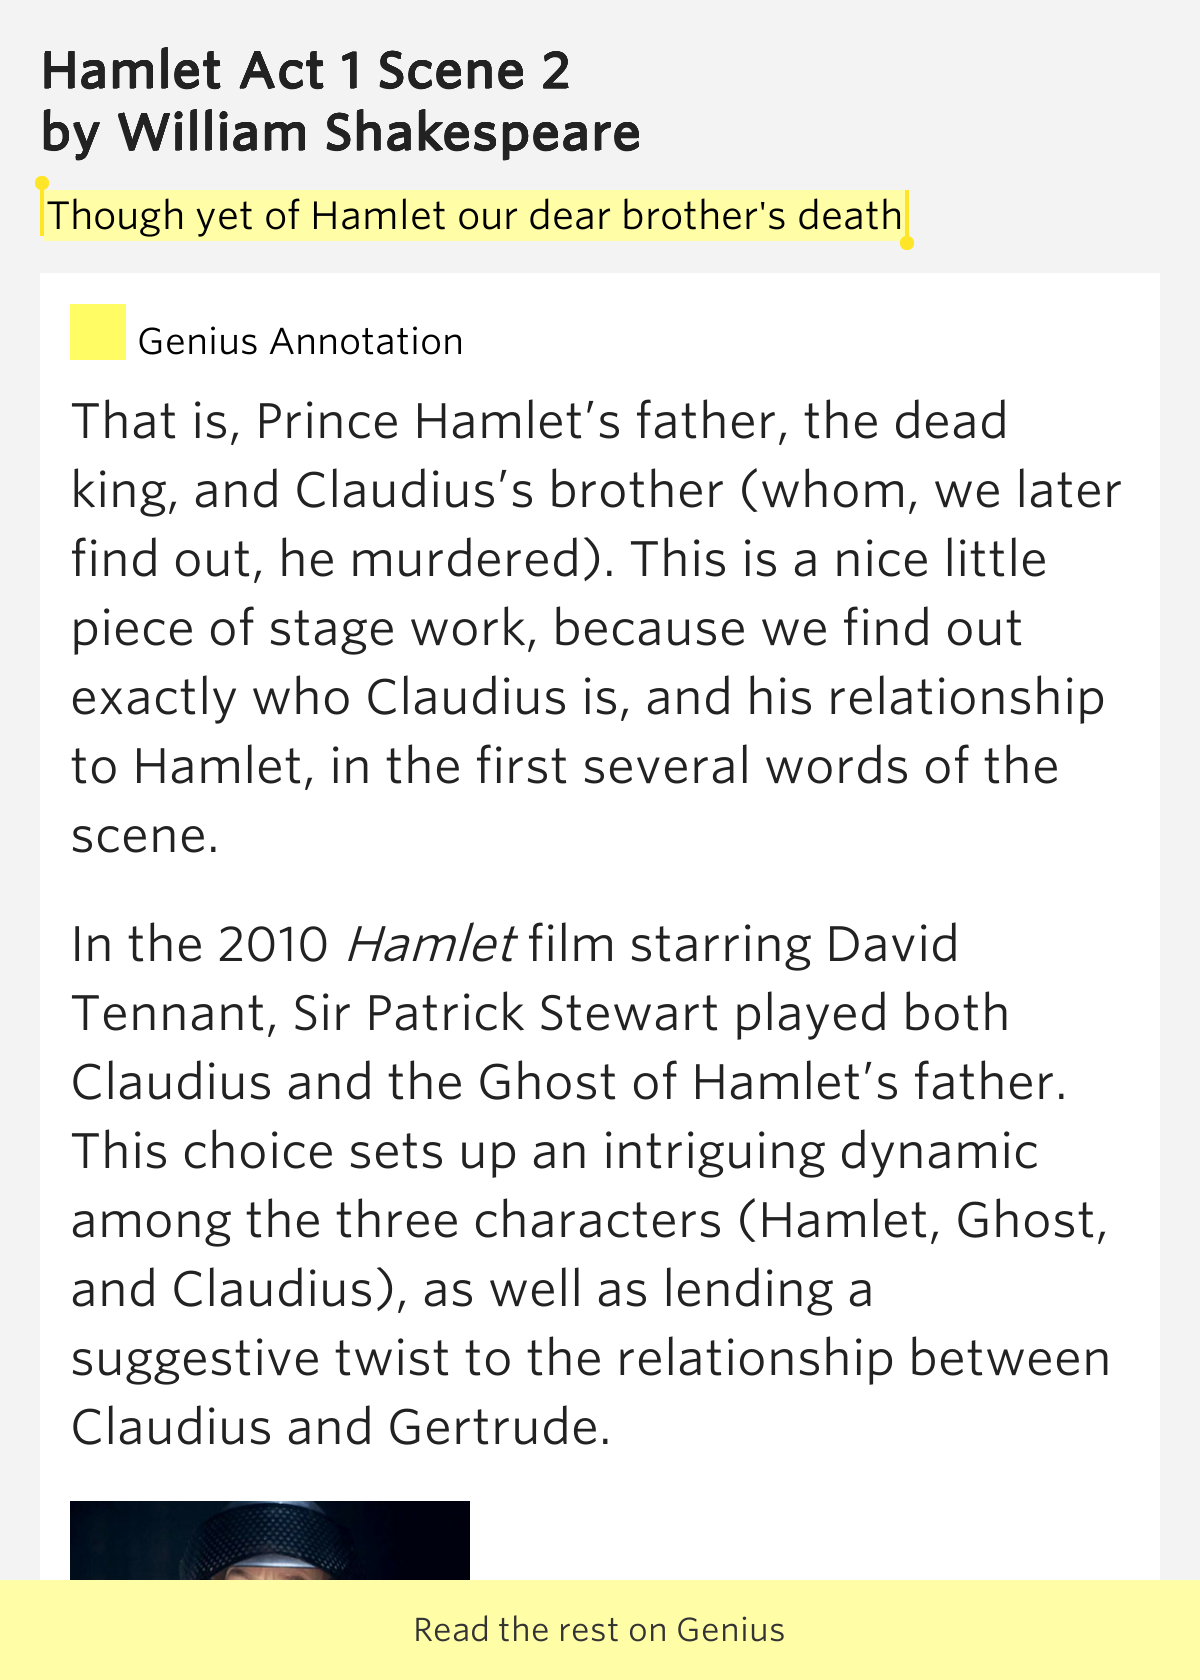 the relationship between hamlet and claudius in hamlet a play by william shakespeare Hamlet by william shakespeare  reeling from claudius's violent reaction to a play, hamlet mistakenly kills polonius  subtle hint found in laertes .